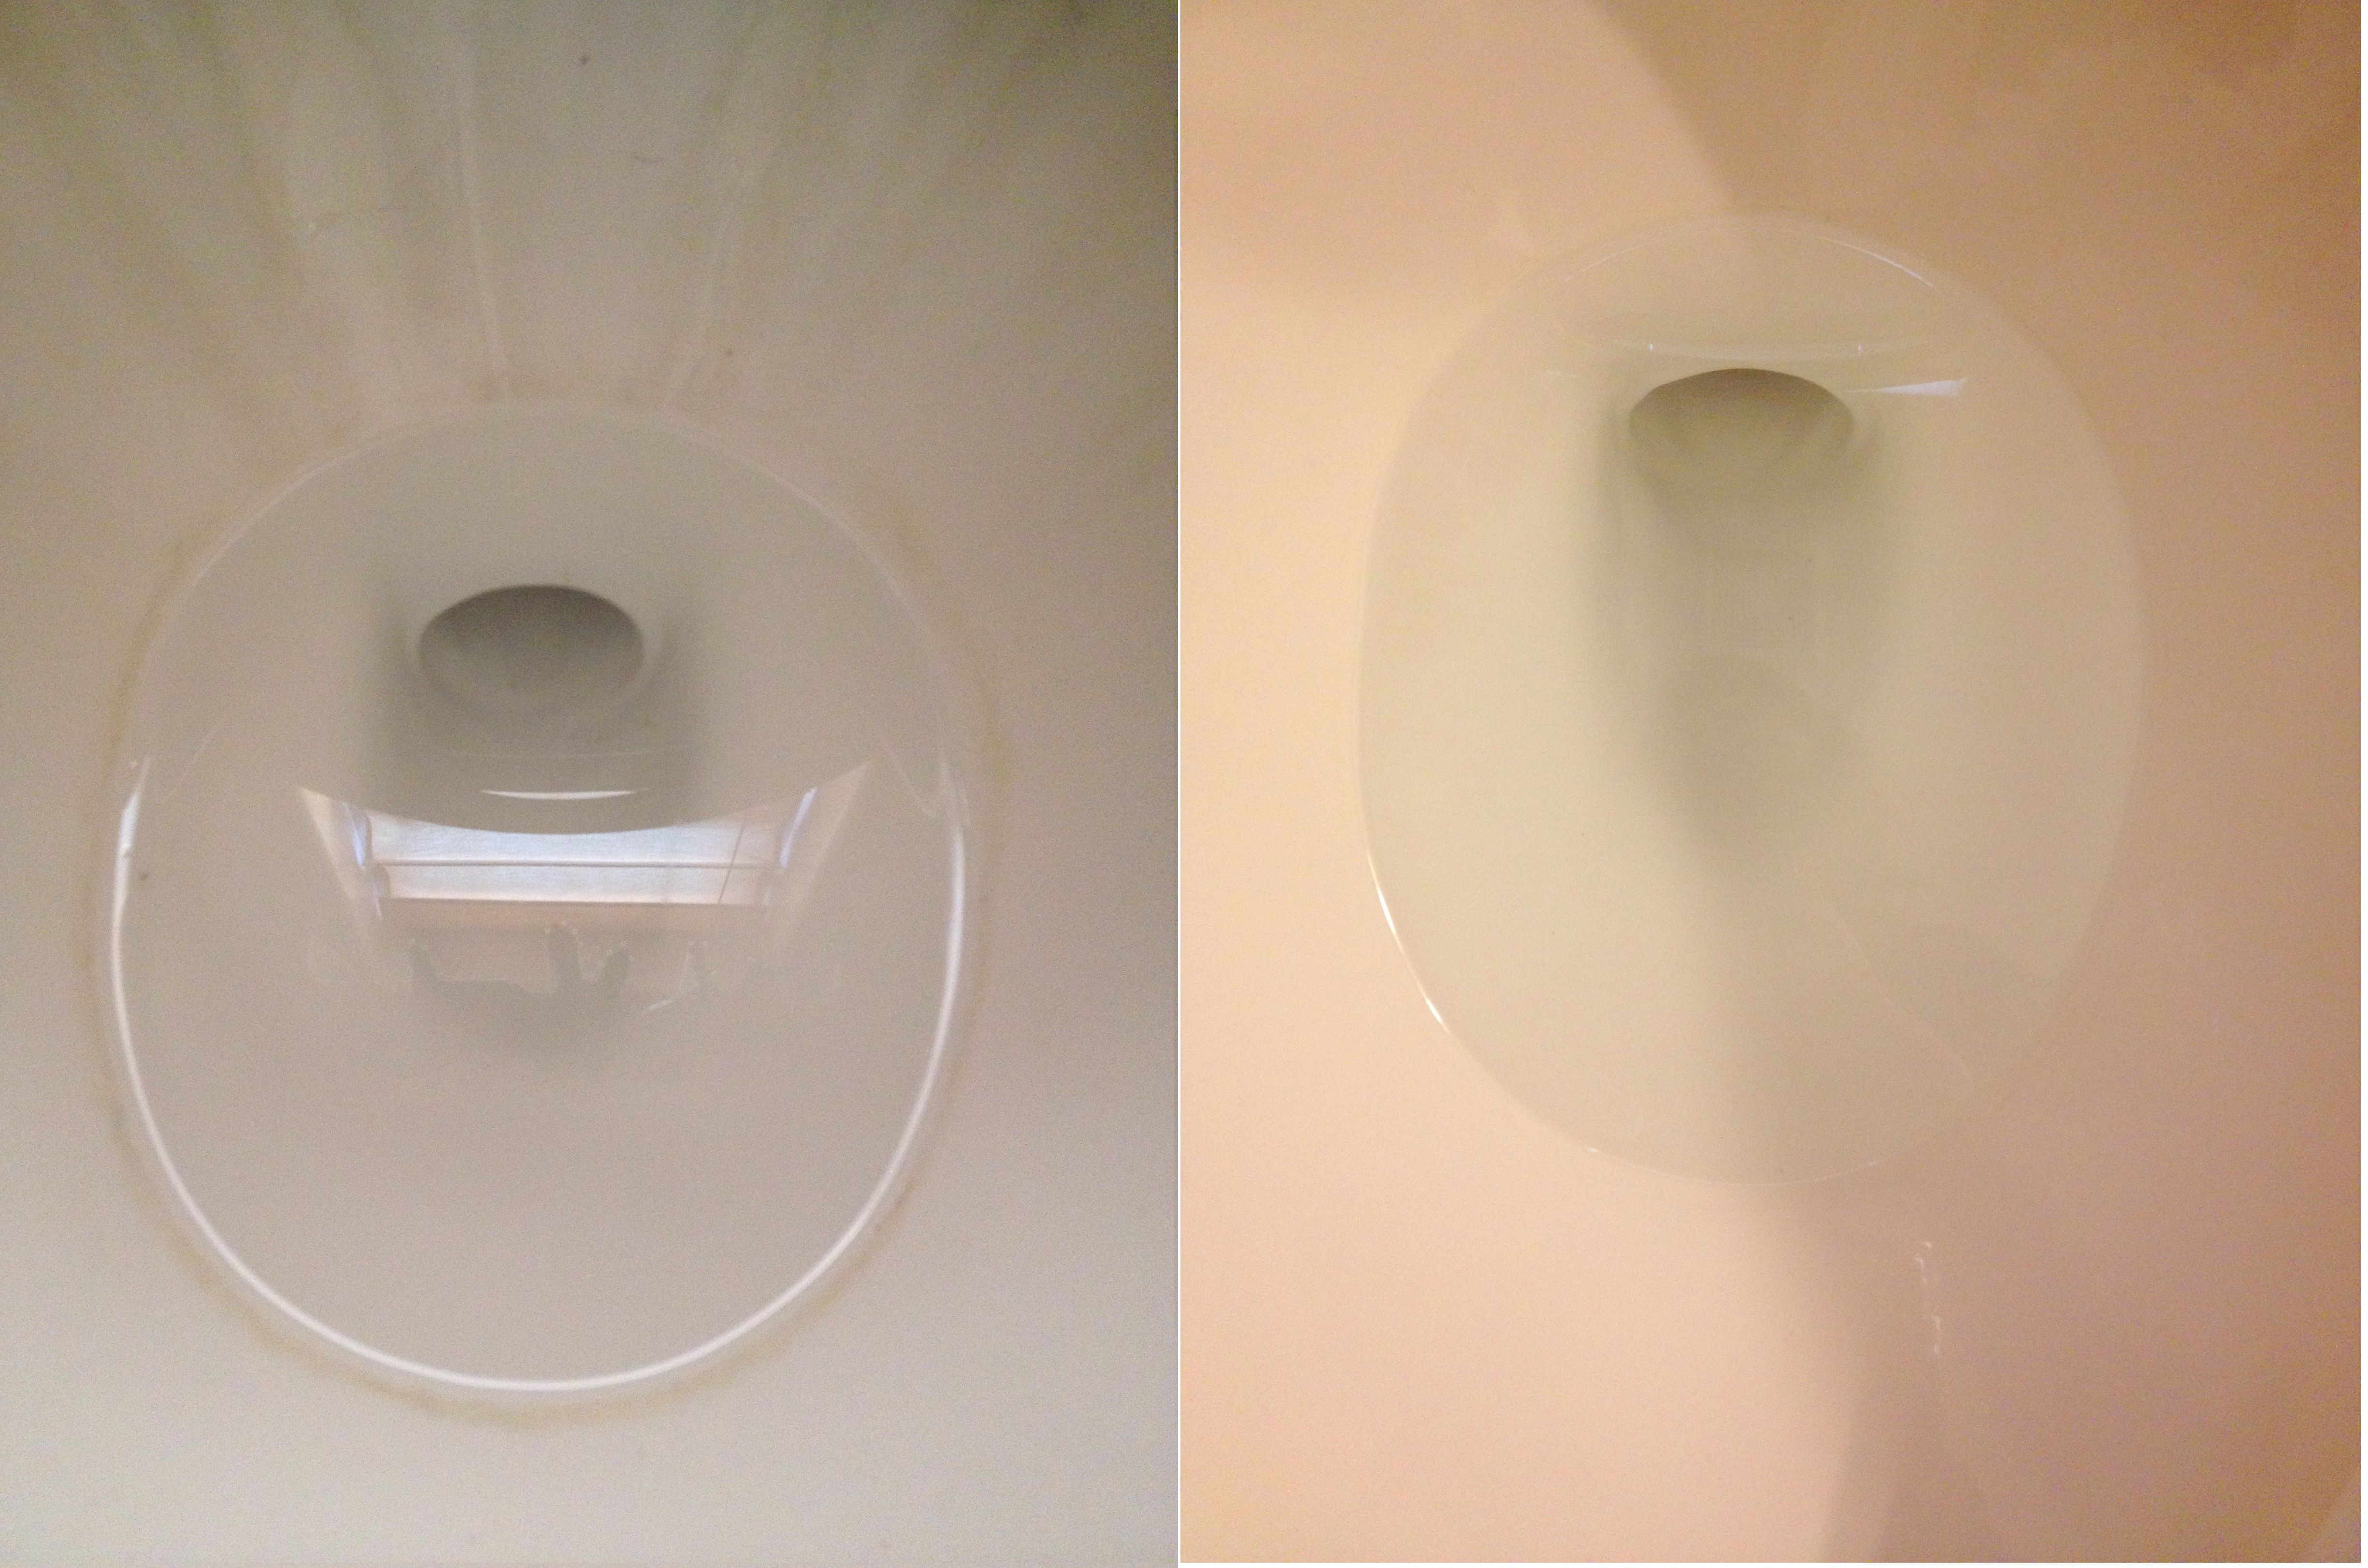 Hard water stains on stainless steel - Get Rid Of The Hard Water Ring Around Your Toilet Bowl Use 2 Cups Of Vinegar And Sprinkle 2 Tablespoons Of Baking Soda And Watch The Stains Start To Sizzle